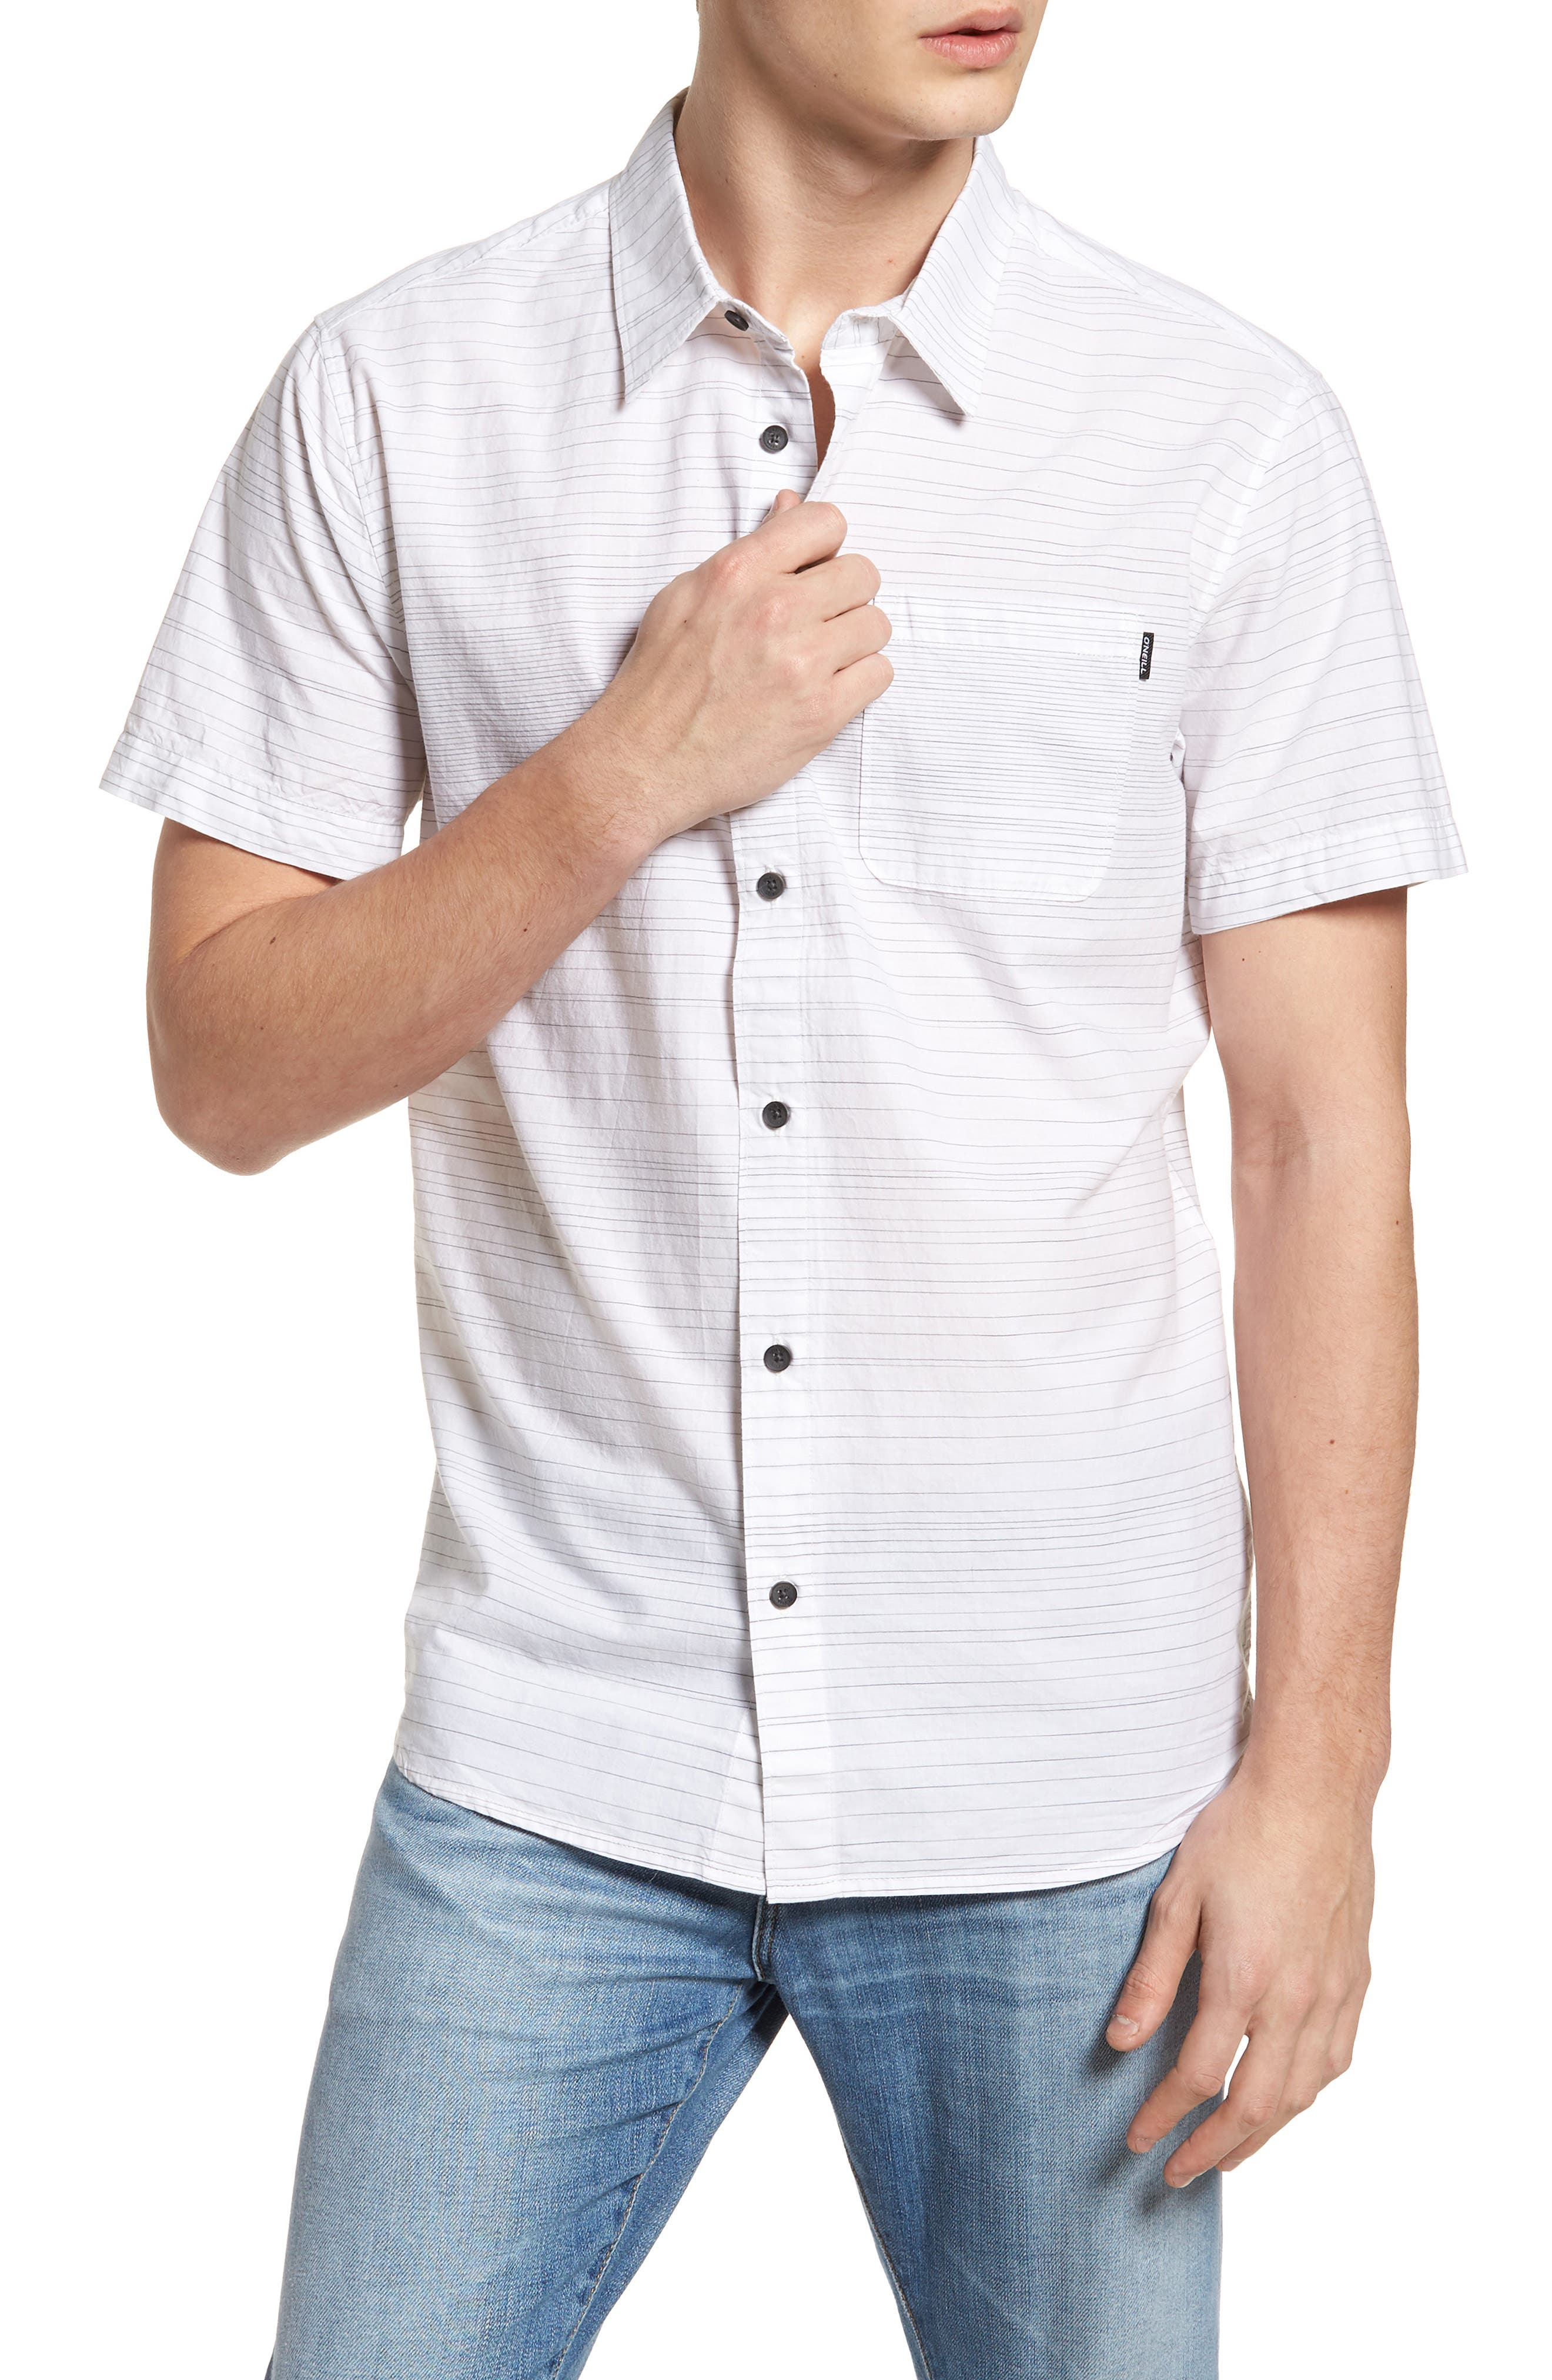 Hound Woven Shirt,                         Main,                         color, White